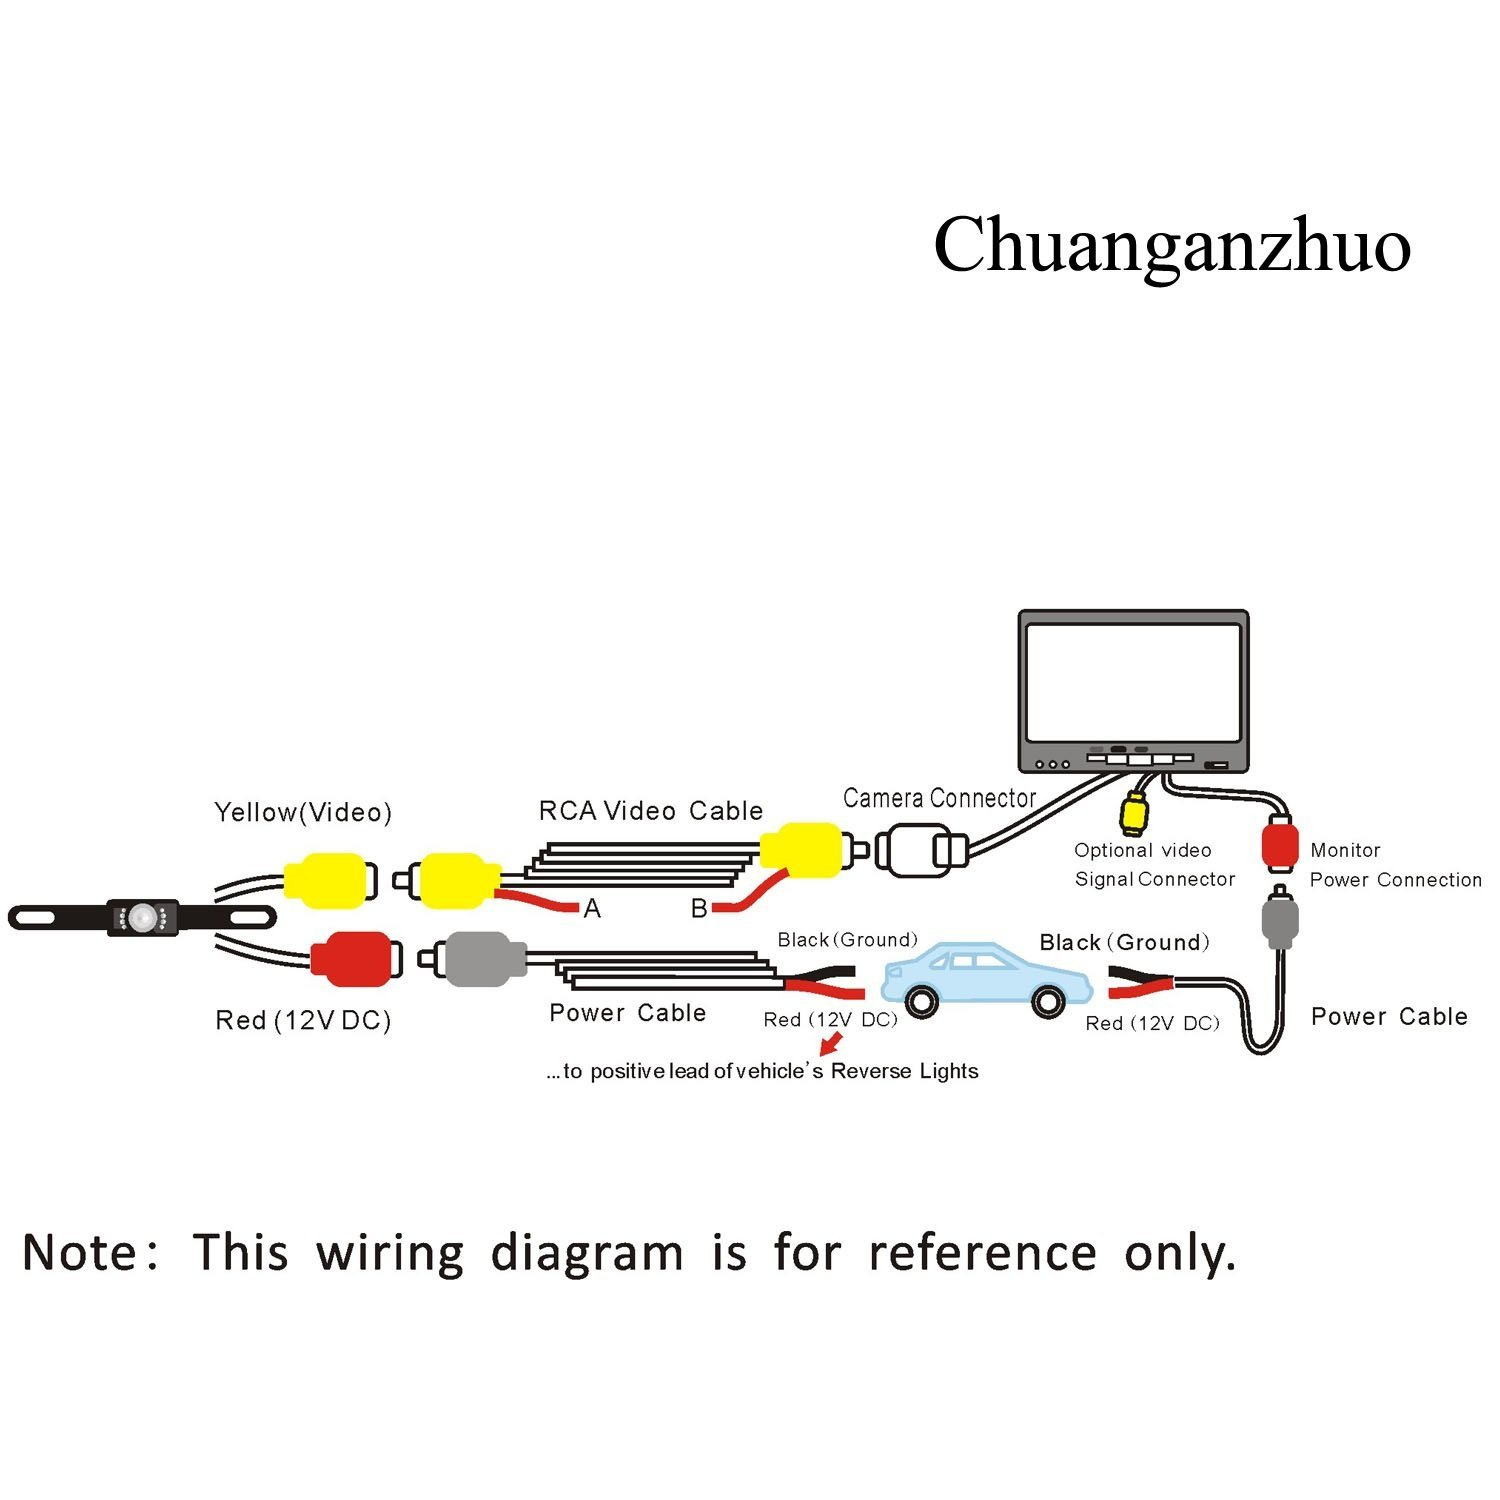 safety vision camera wiring diagram Collection-Amazon Backup Camera and  Monitor Kit Chuanganzhuo License Plate. DOWNLOAD. Wiring Diagram ...